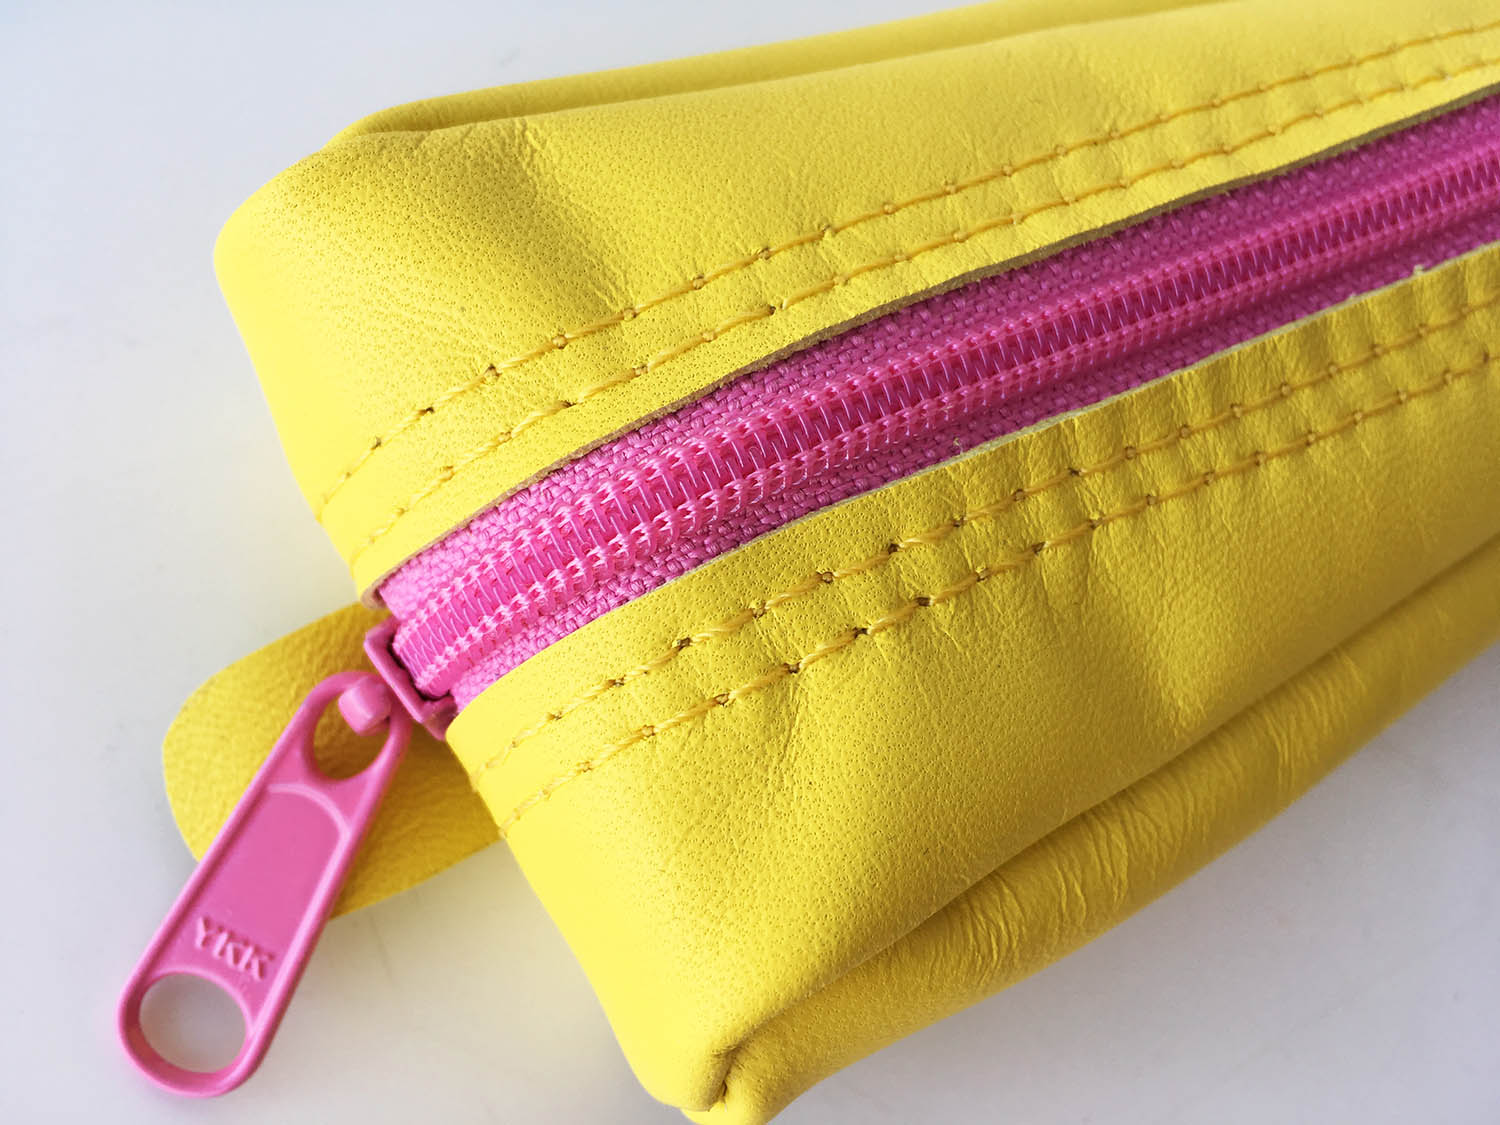 Yellow leather pencil case with pink zip